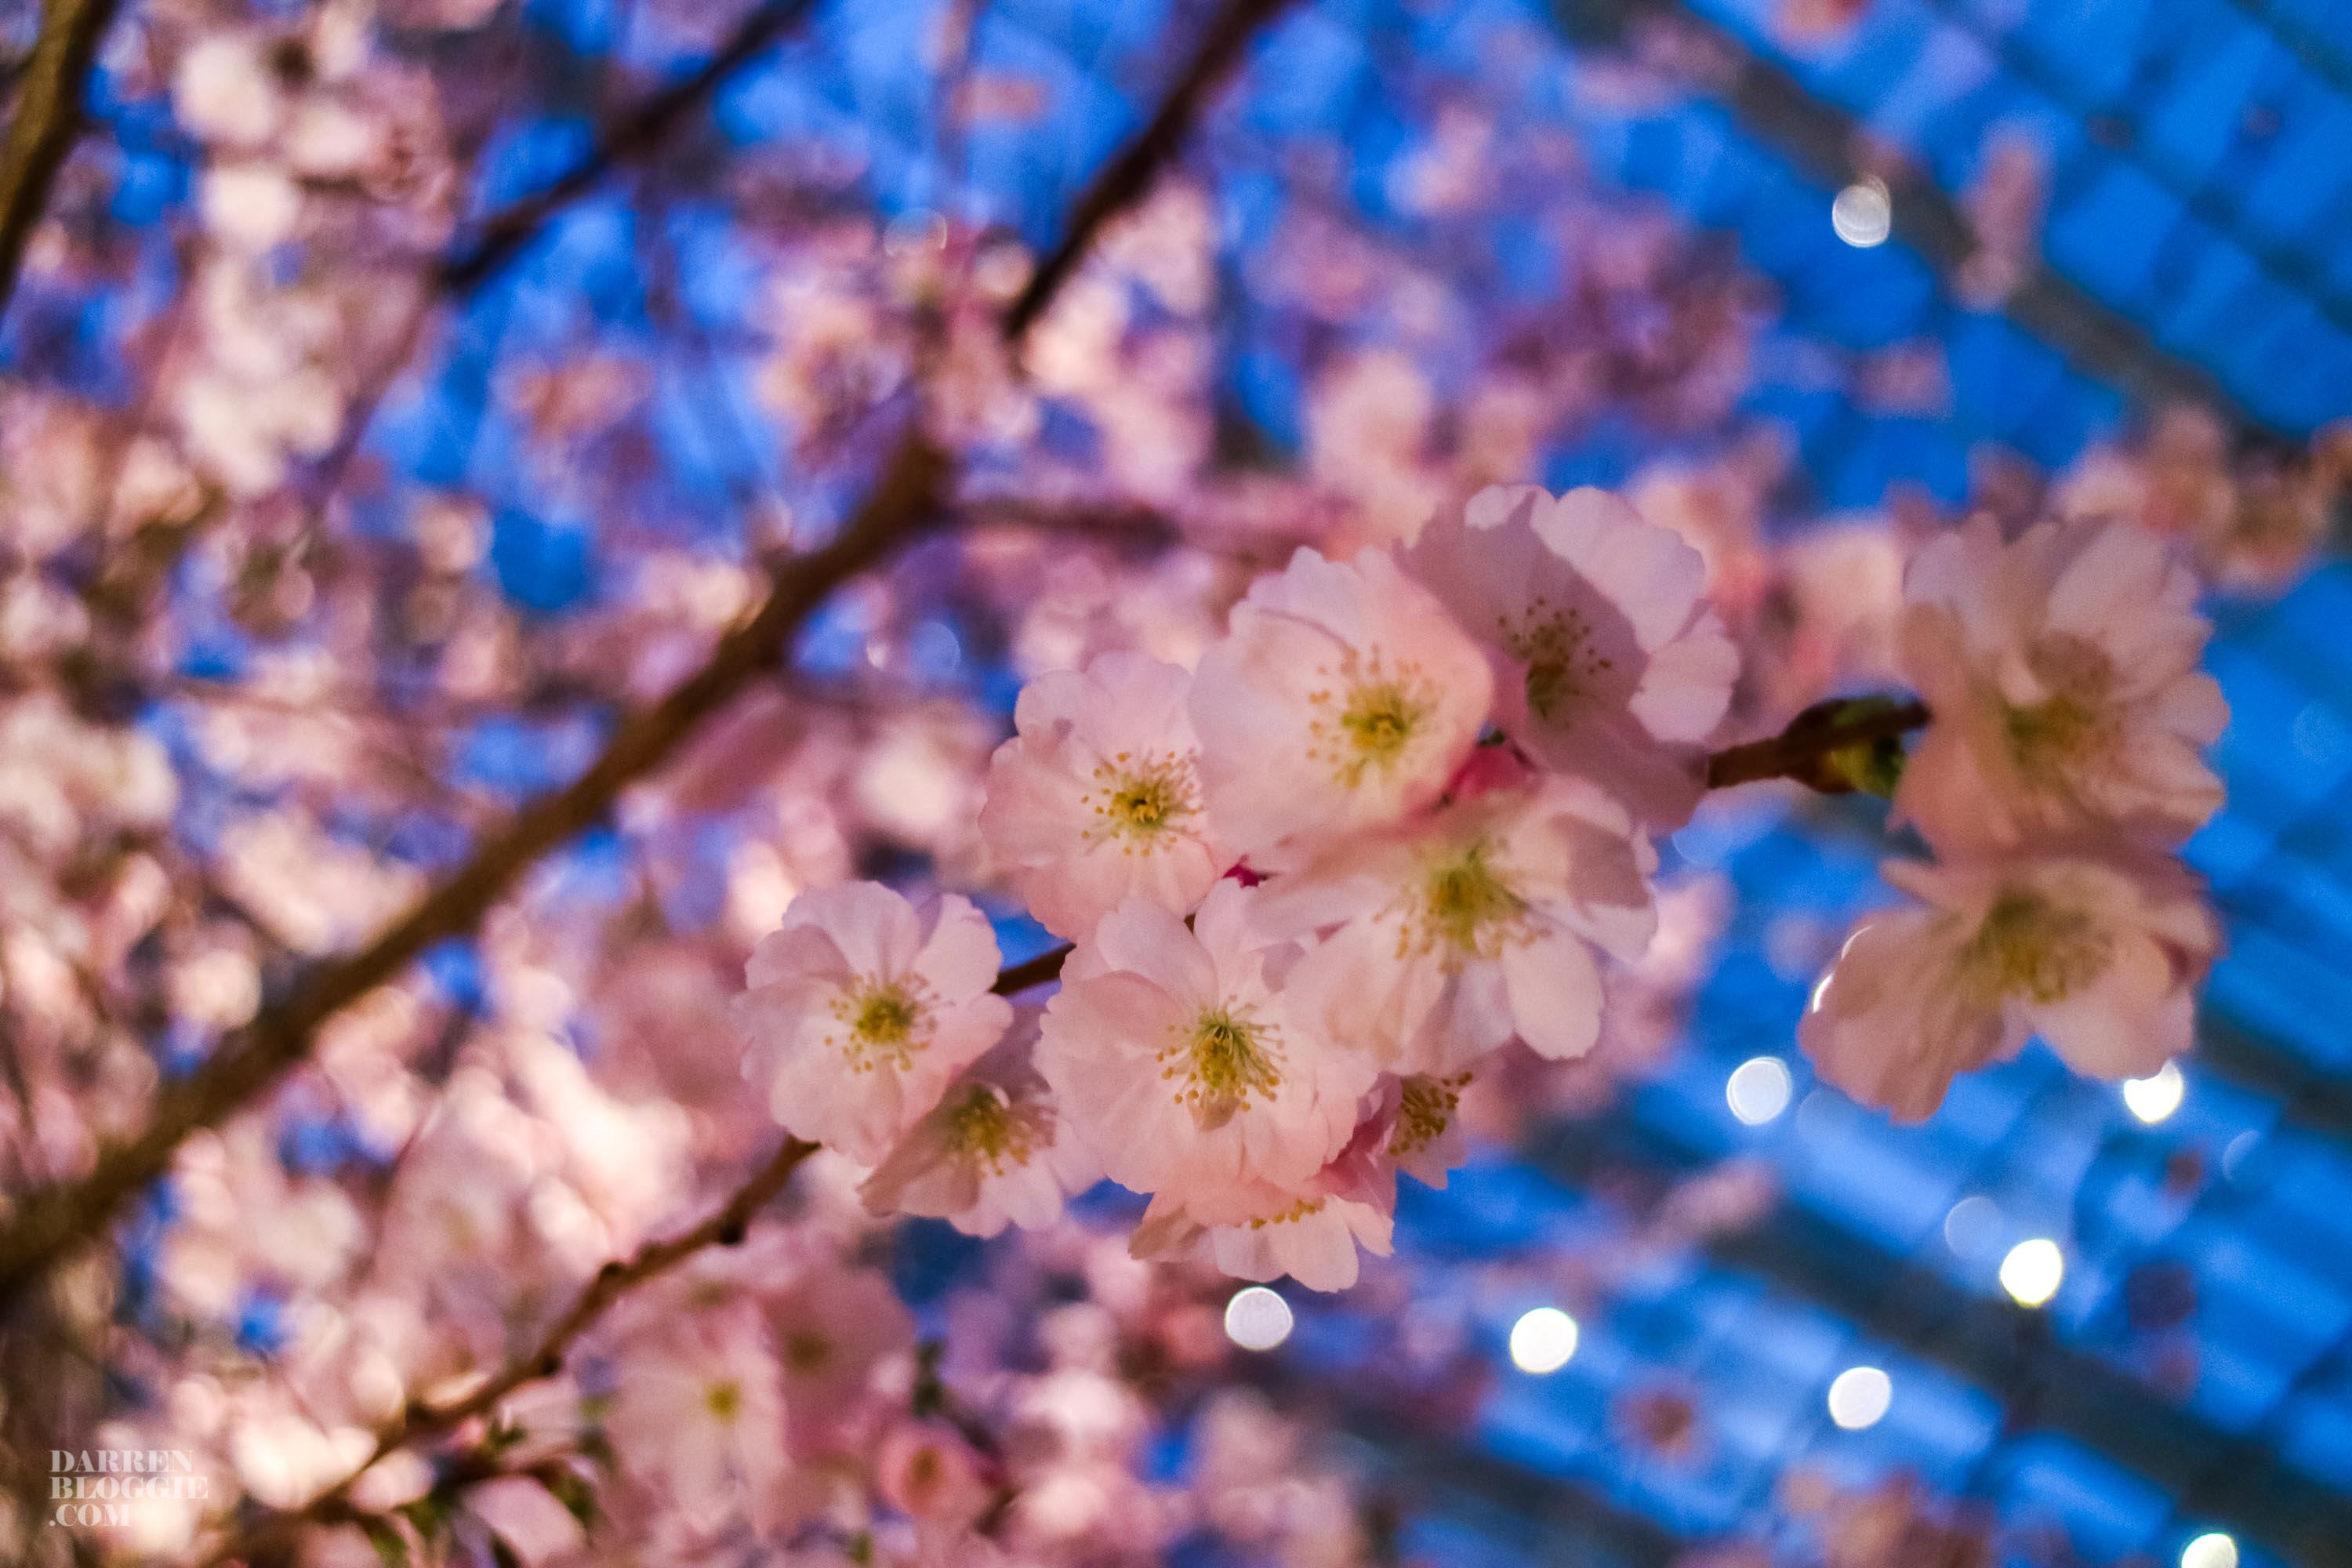 blossom-bliss-cherry-blossom-at-gardens-by-the-bay-darrenbloggie-8